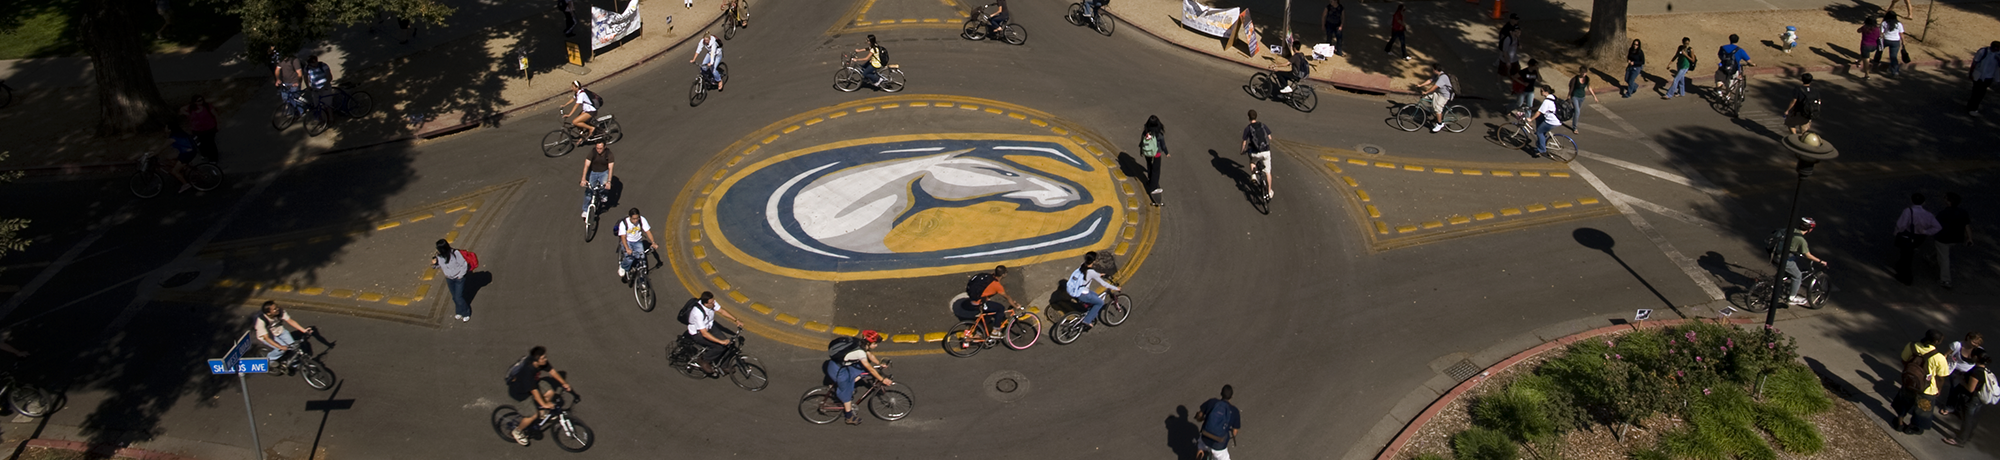 UC Davis bike roundabout with cyclists